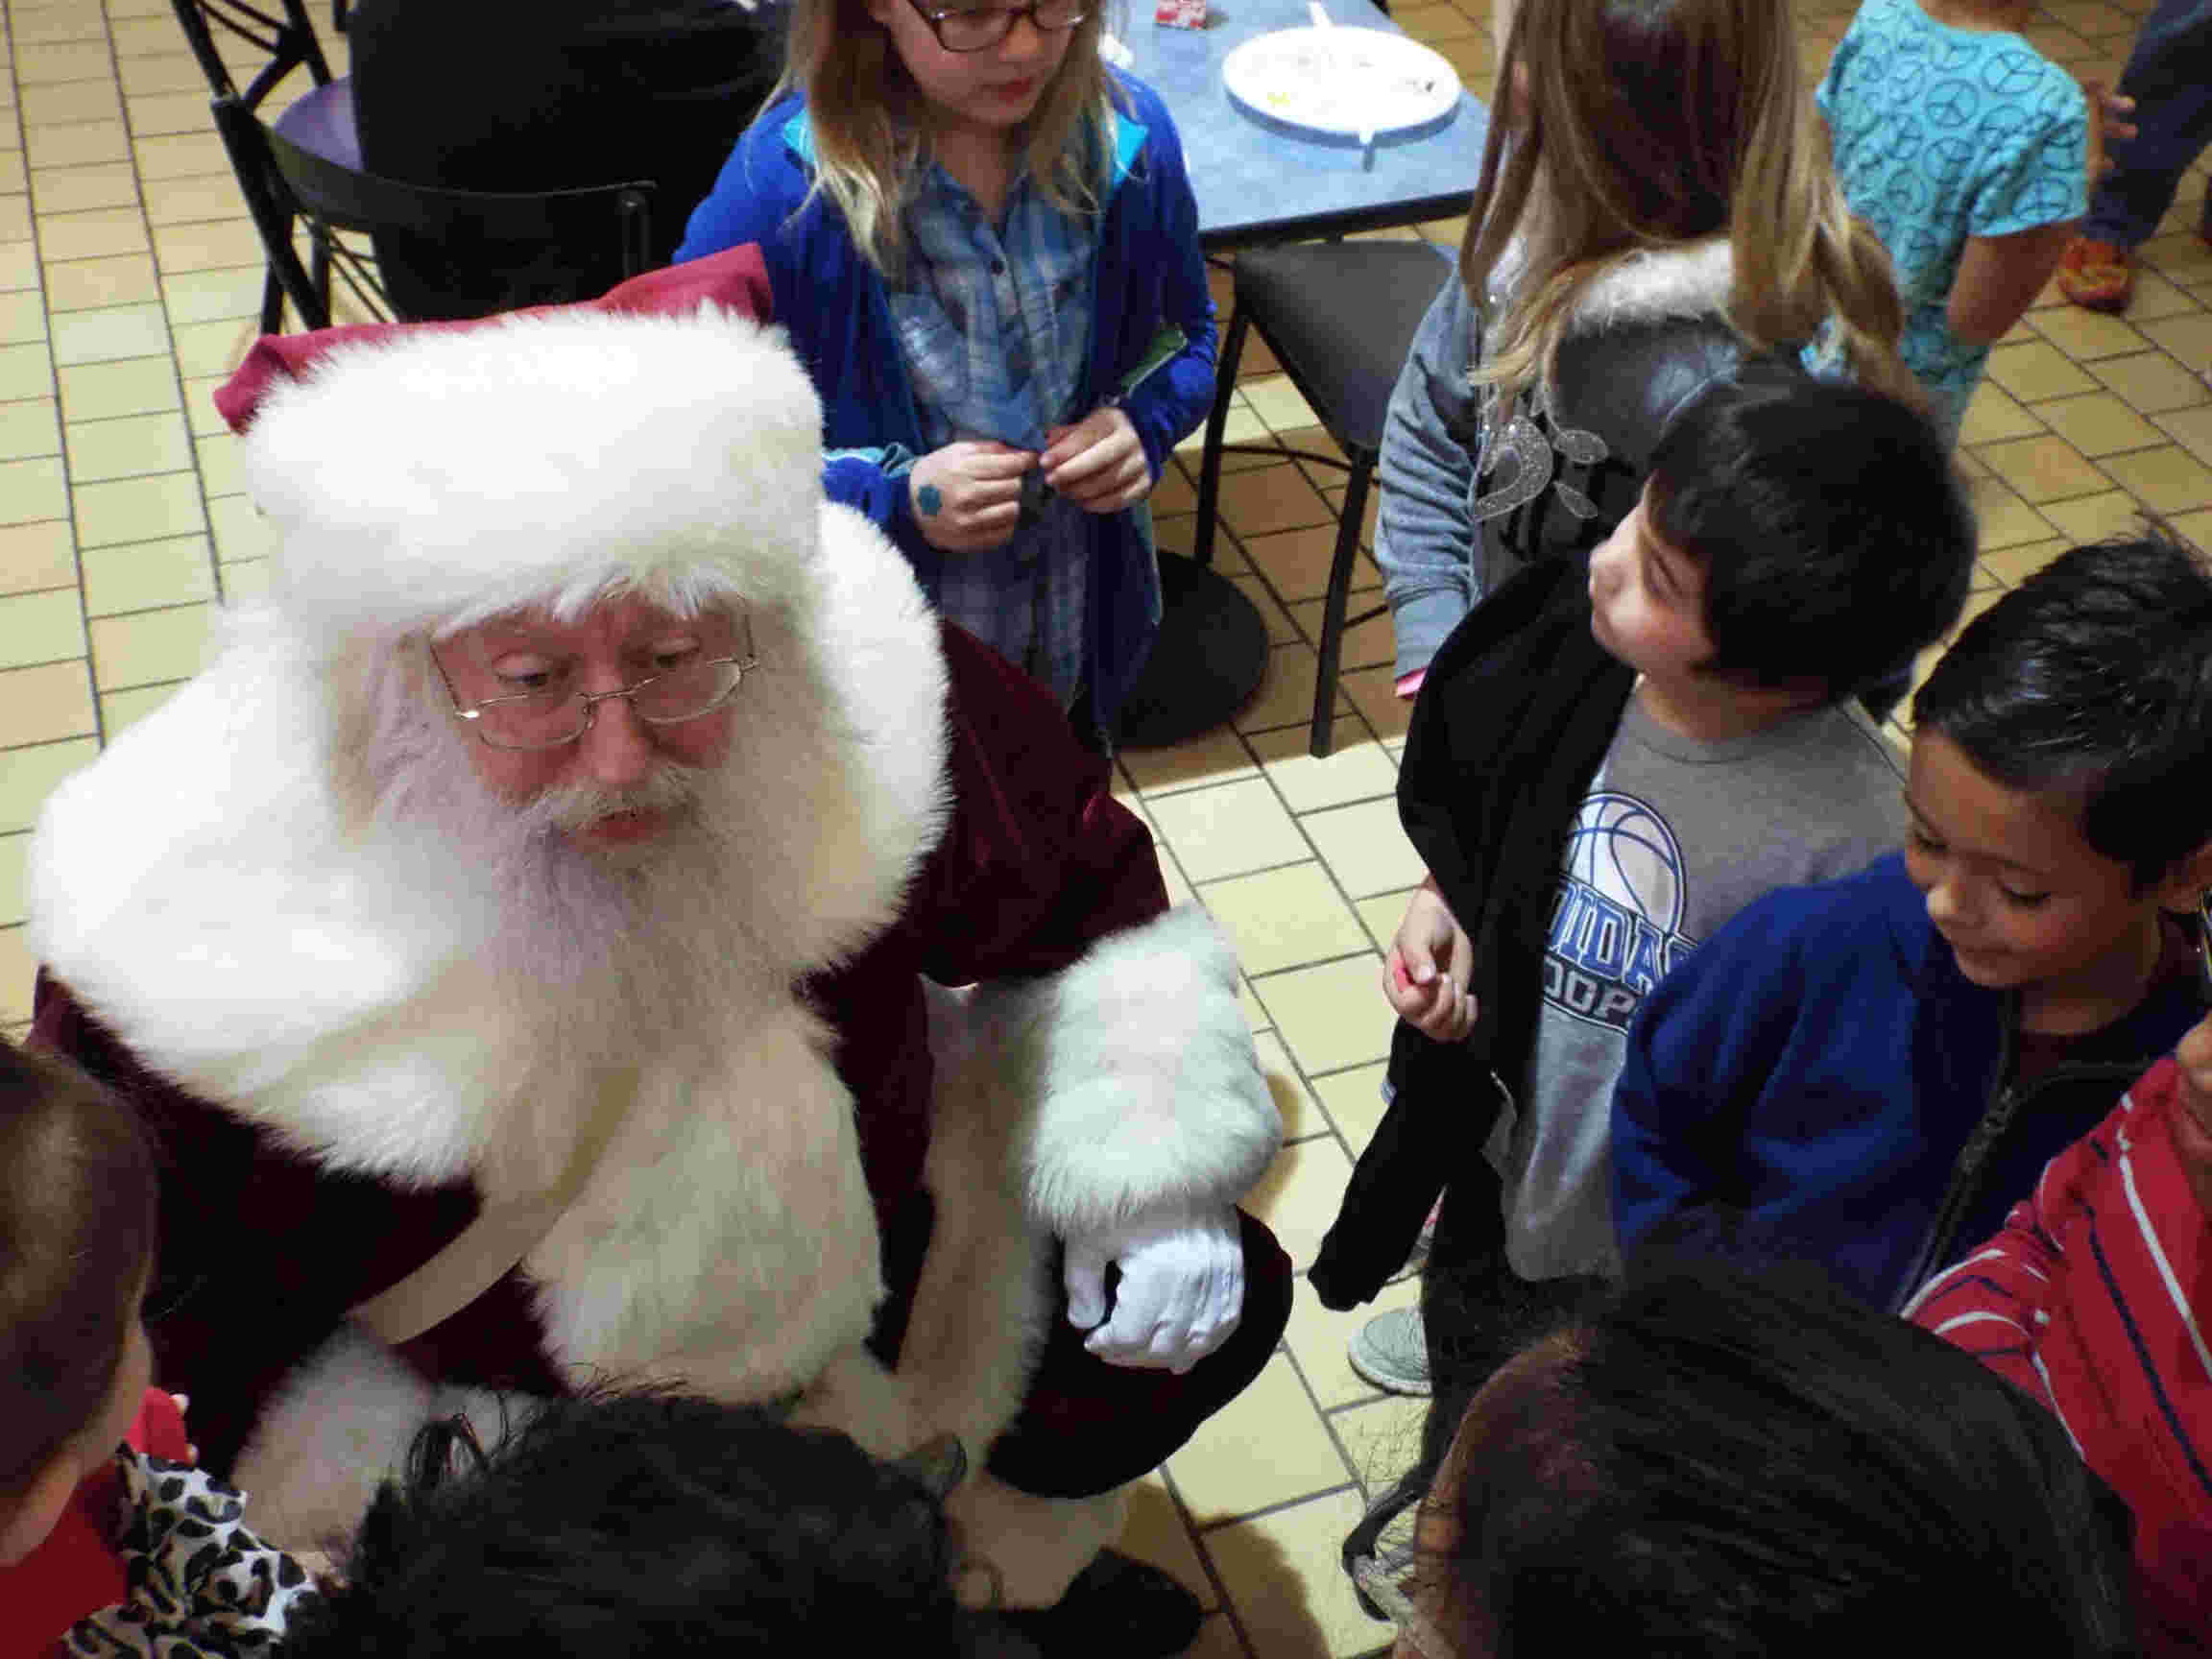 Santa talks with children at the Breakfast With Santa event.